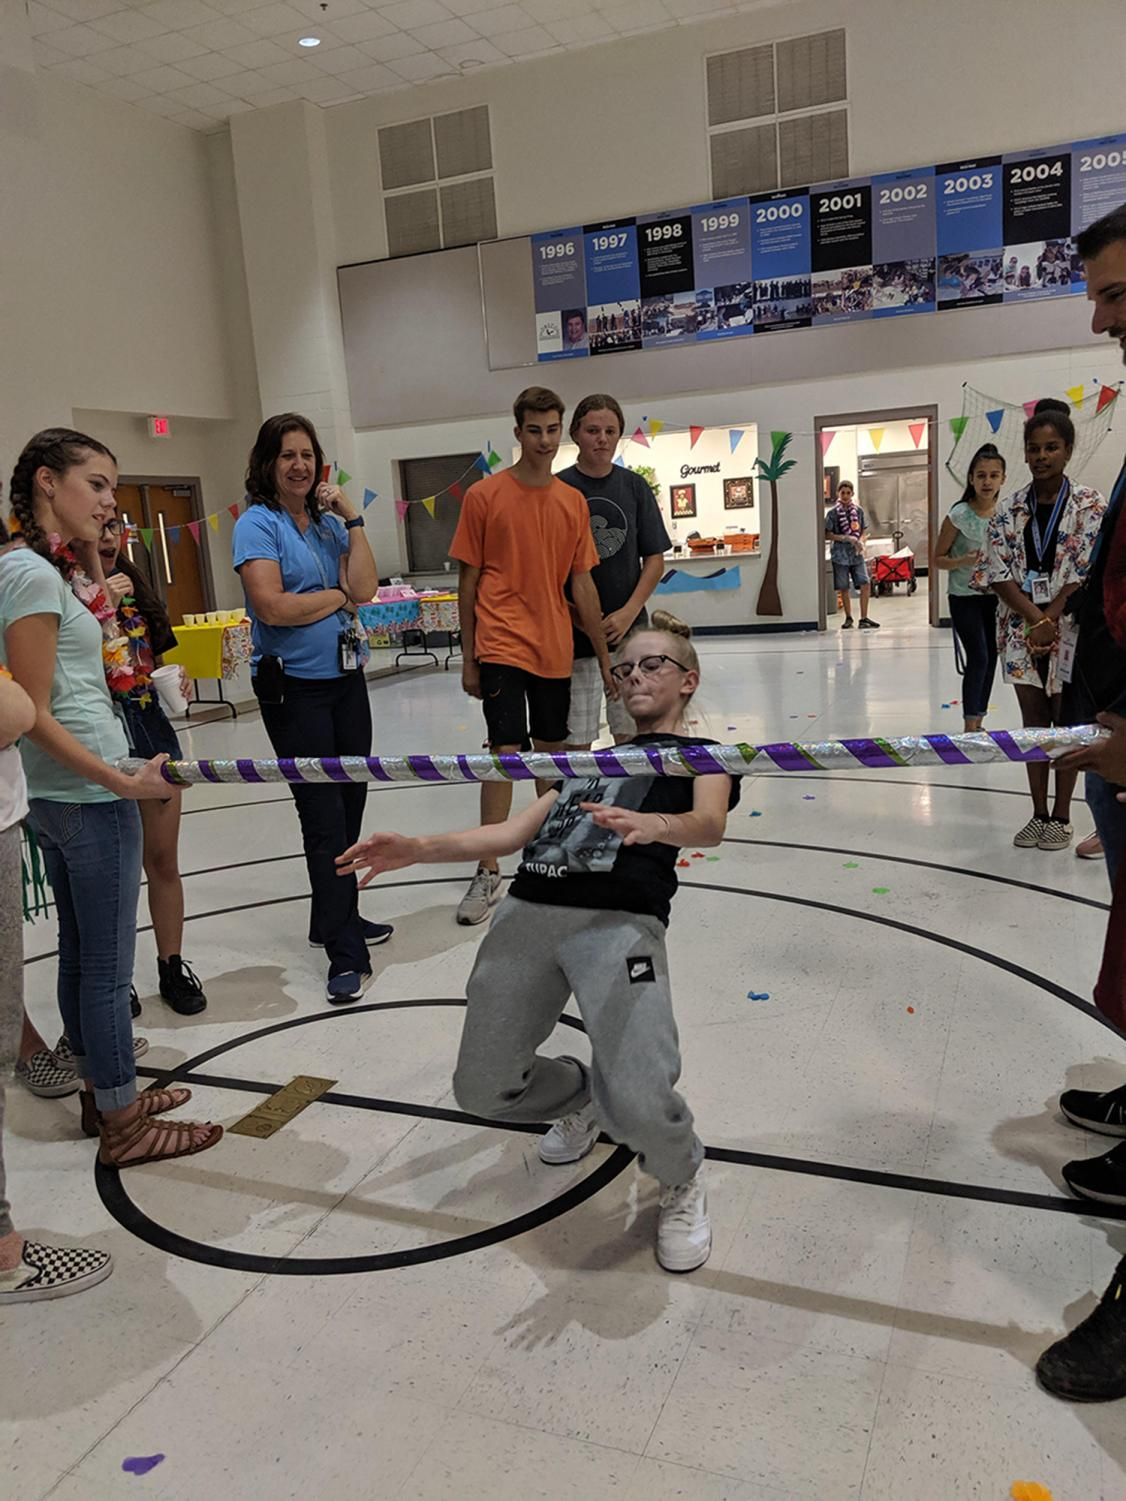 Seventh grader Natalie Ratliff shows off her skills at limbo, winning the competition.